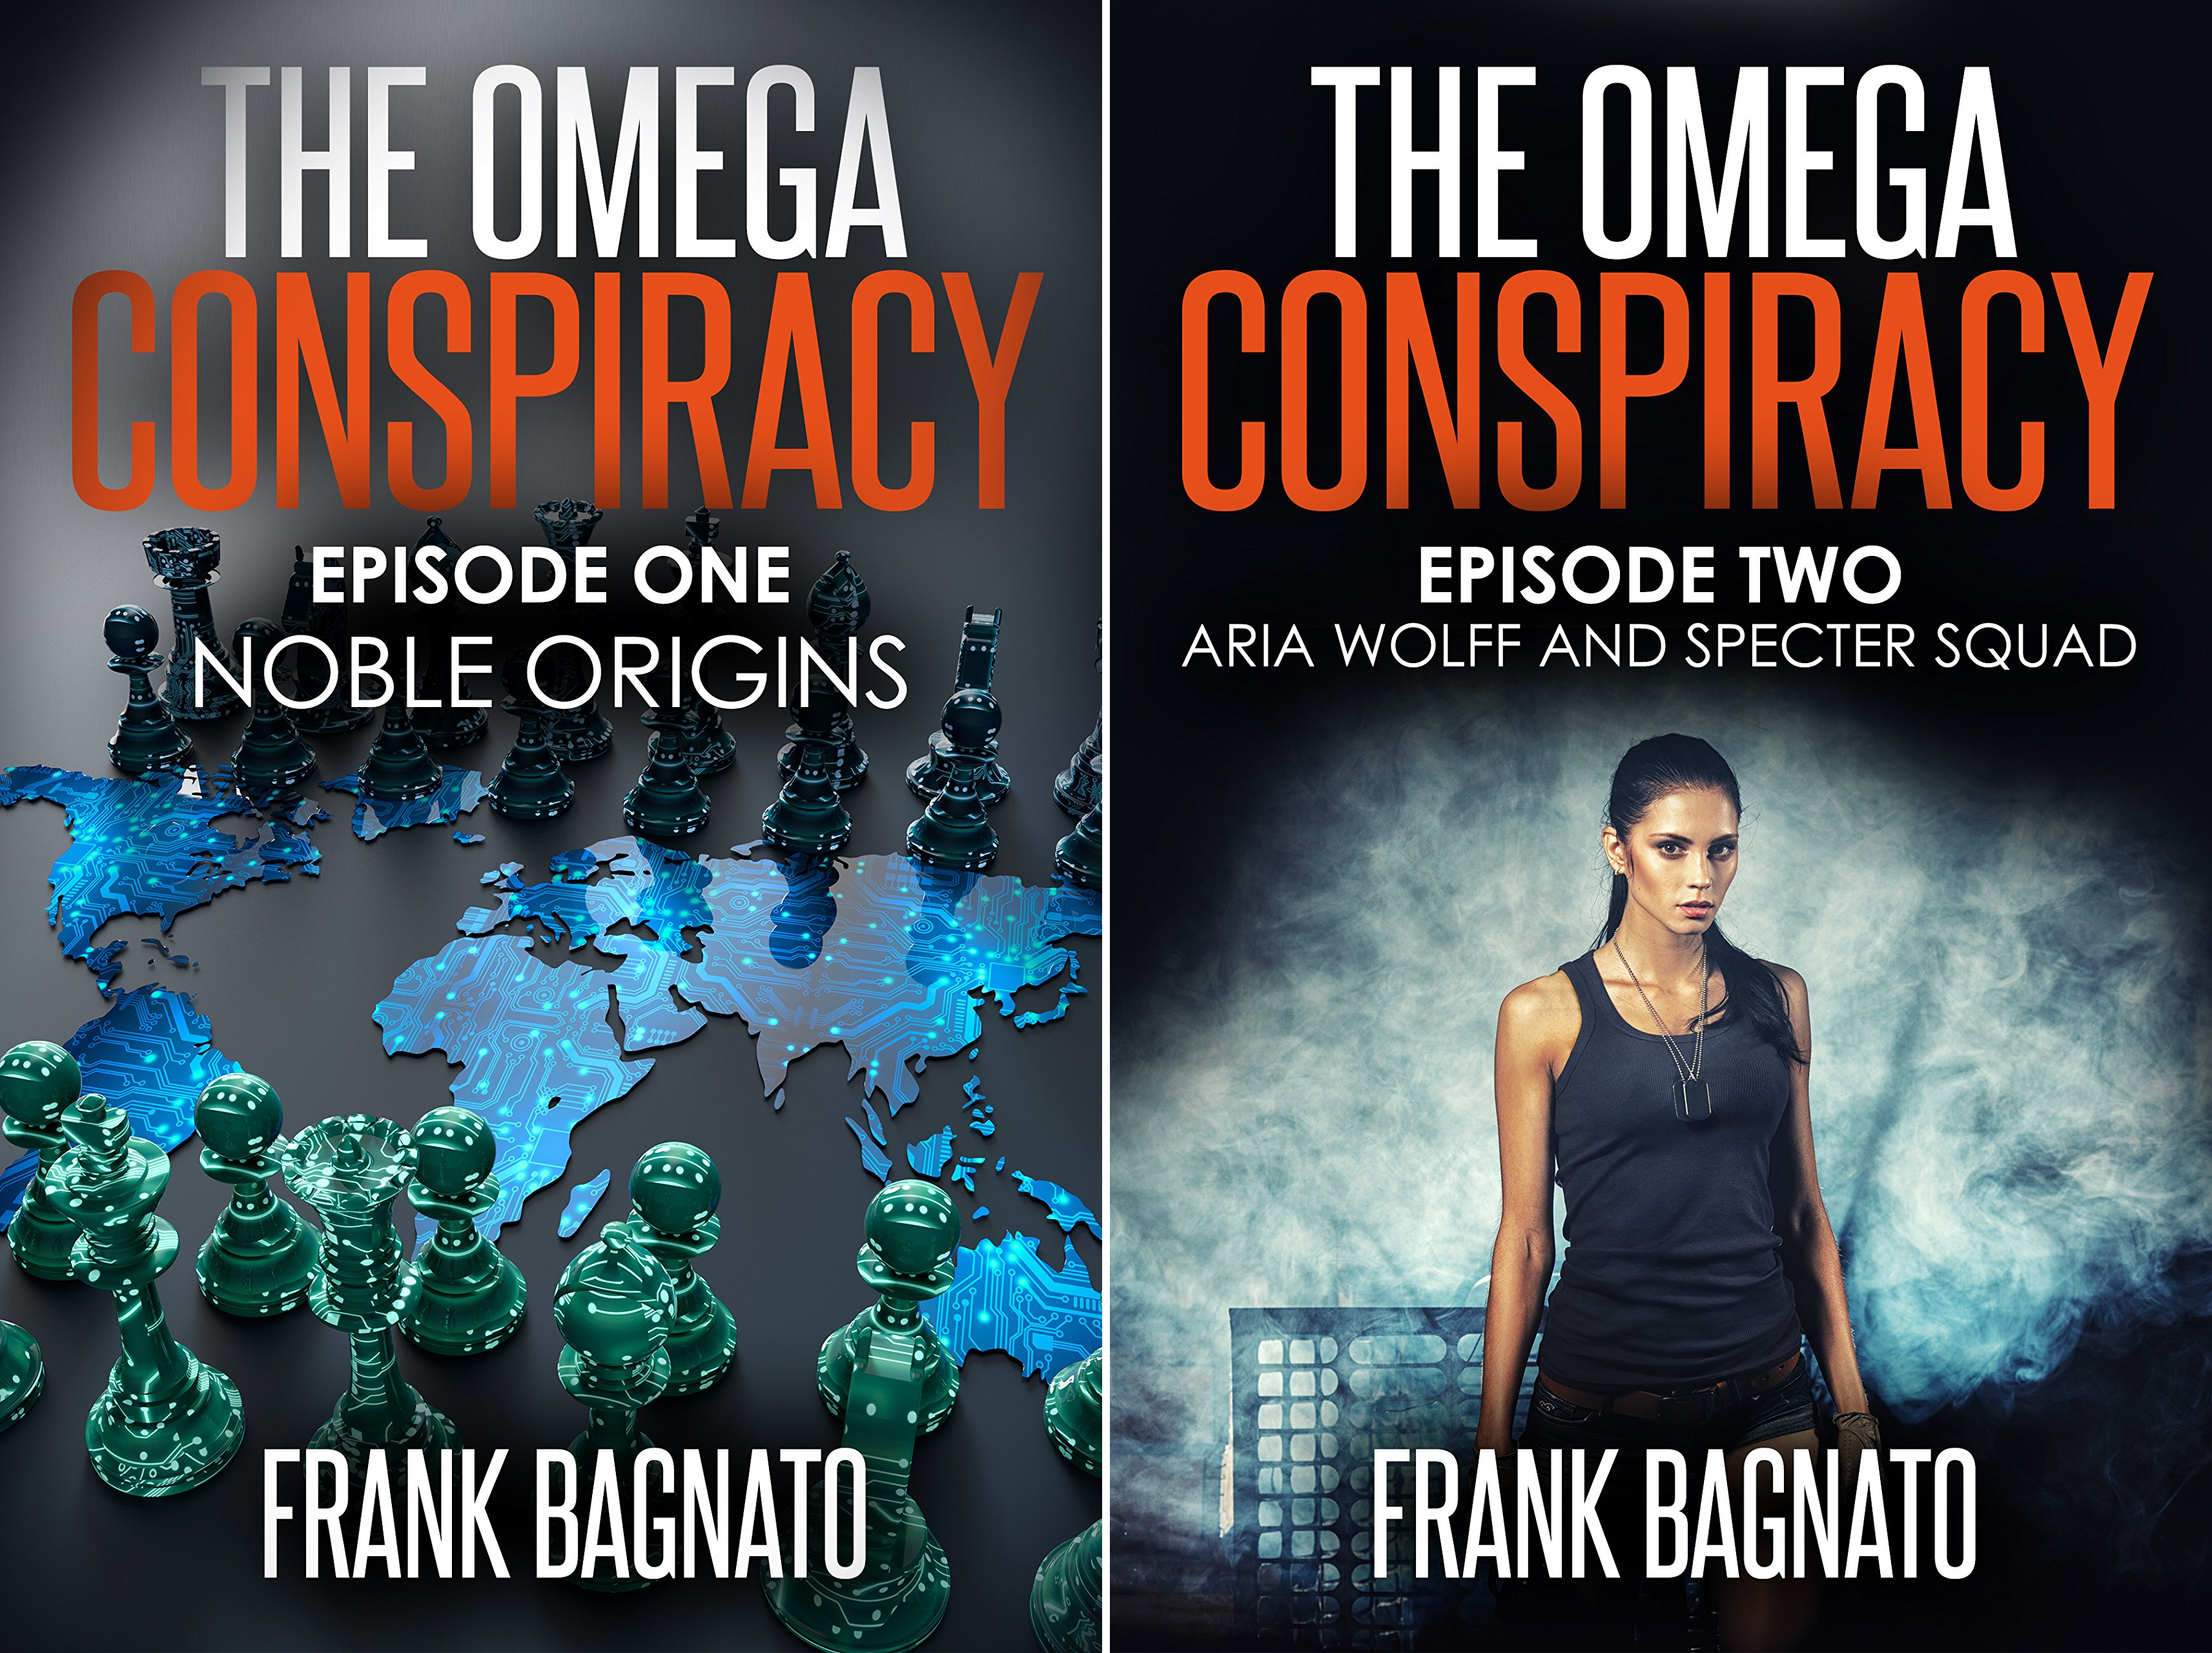 The Omega Conspiracy Series (2 Book Series)